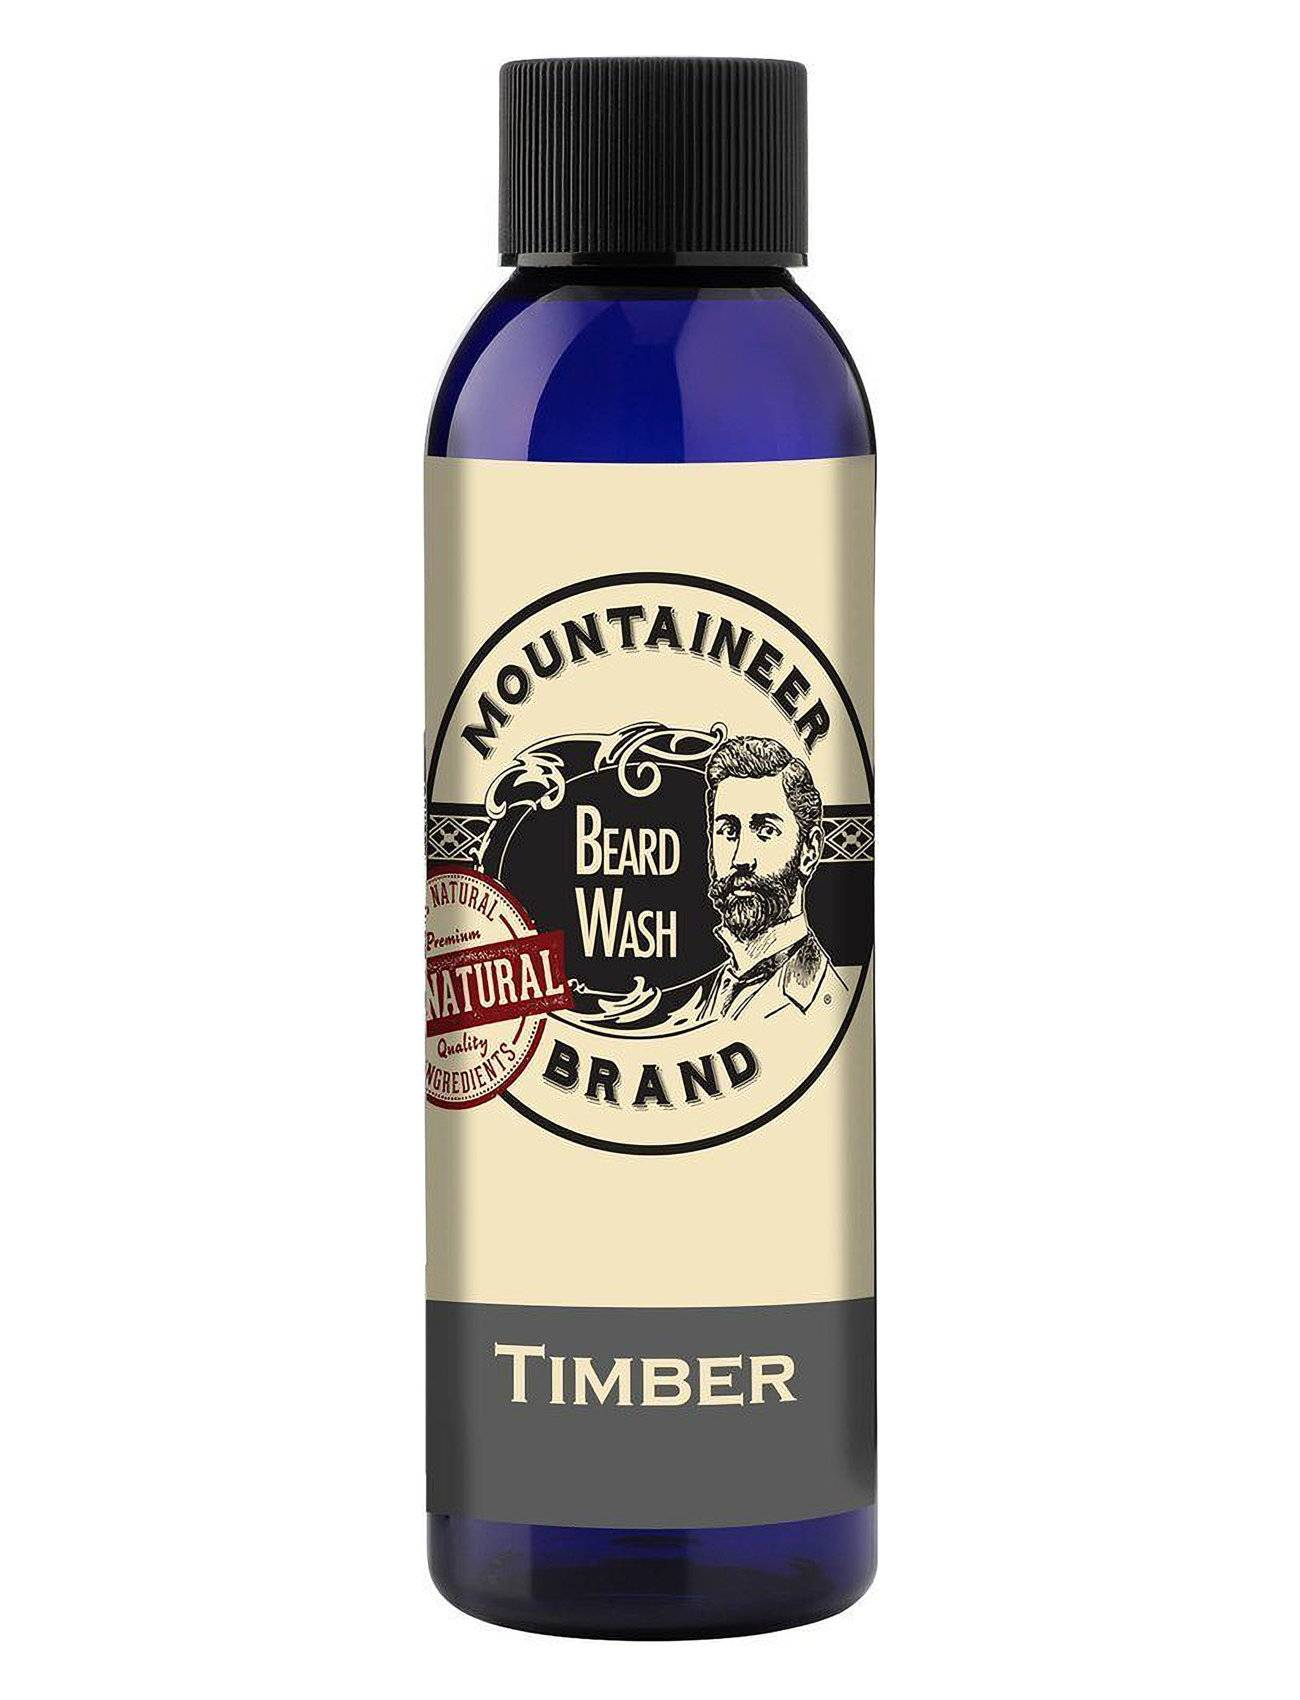 Mountaineer Brand Timber Beard Wash Beauty MEN Shaving Products Beard & Mustache Nude Mountaineer Brand